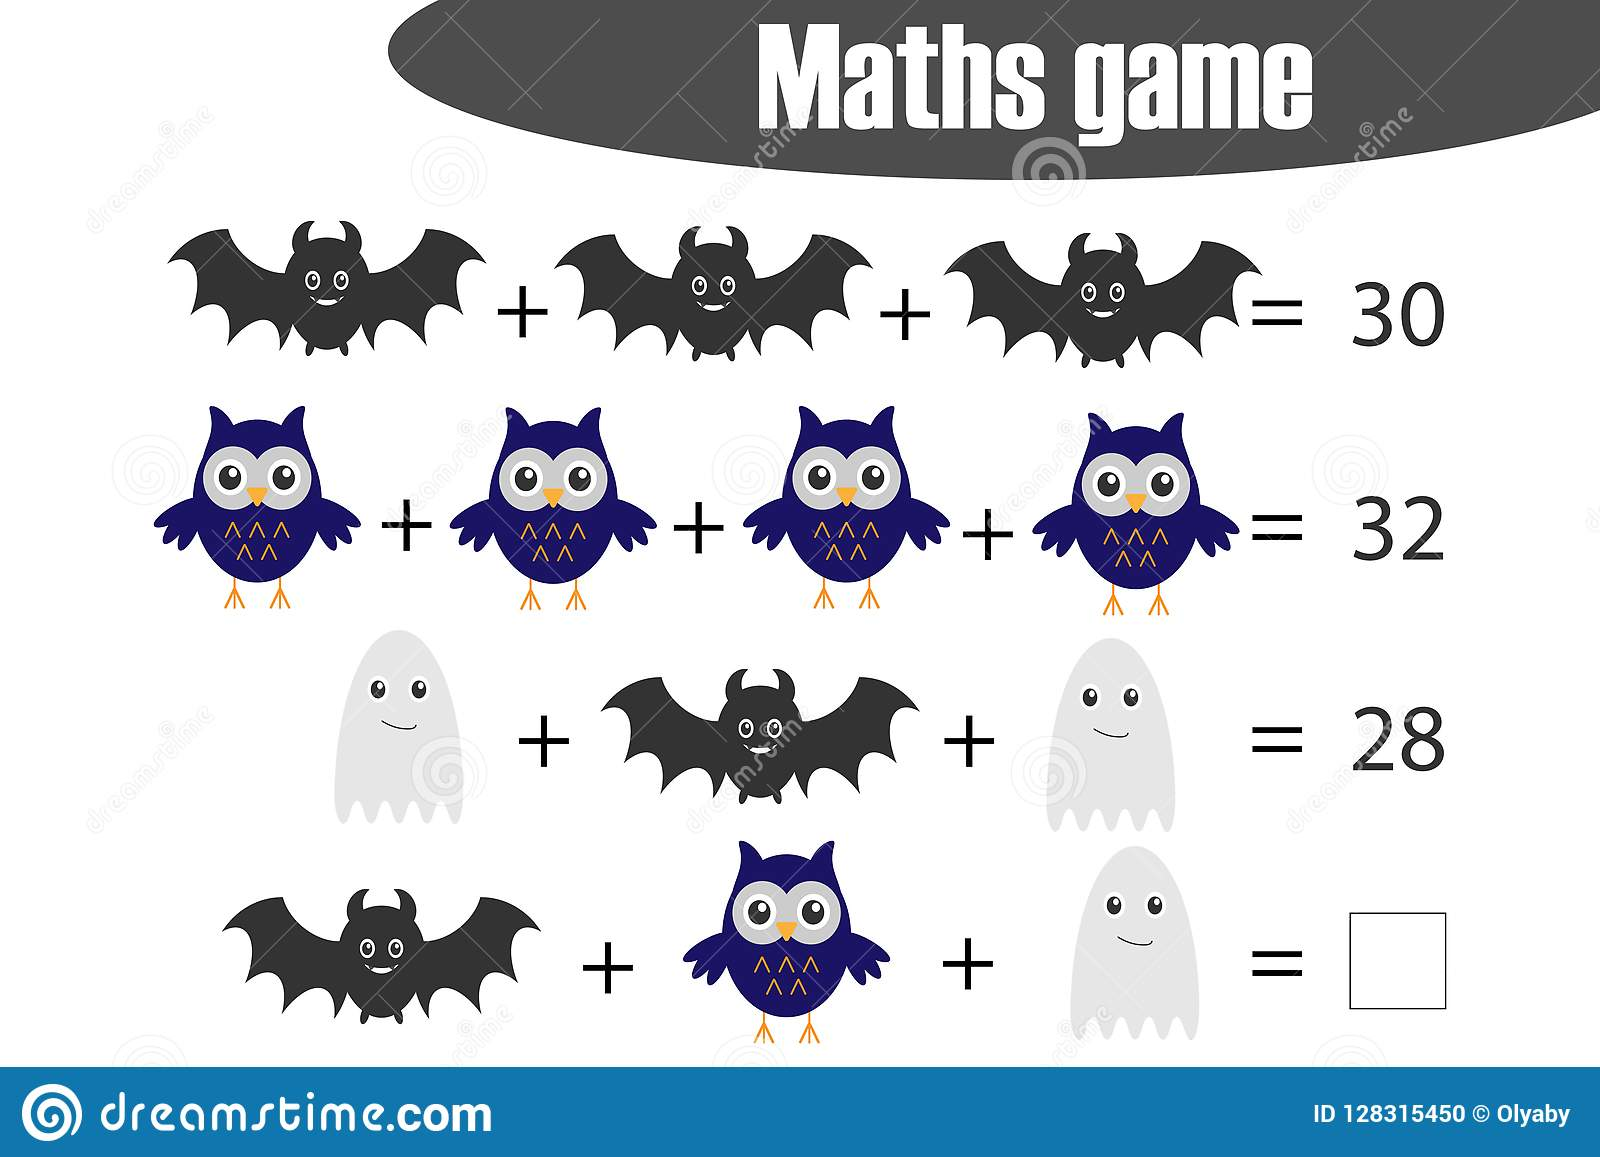 Maths Game With Pictures Halloween Theme For Children